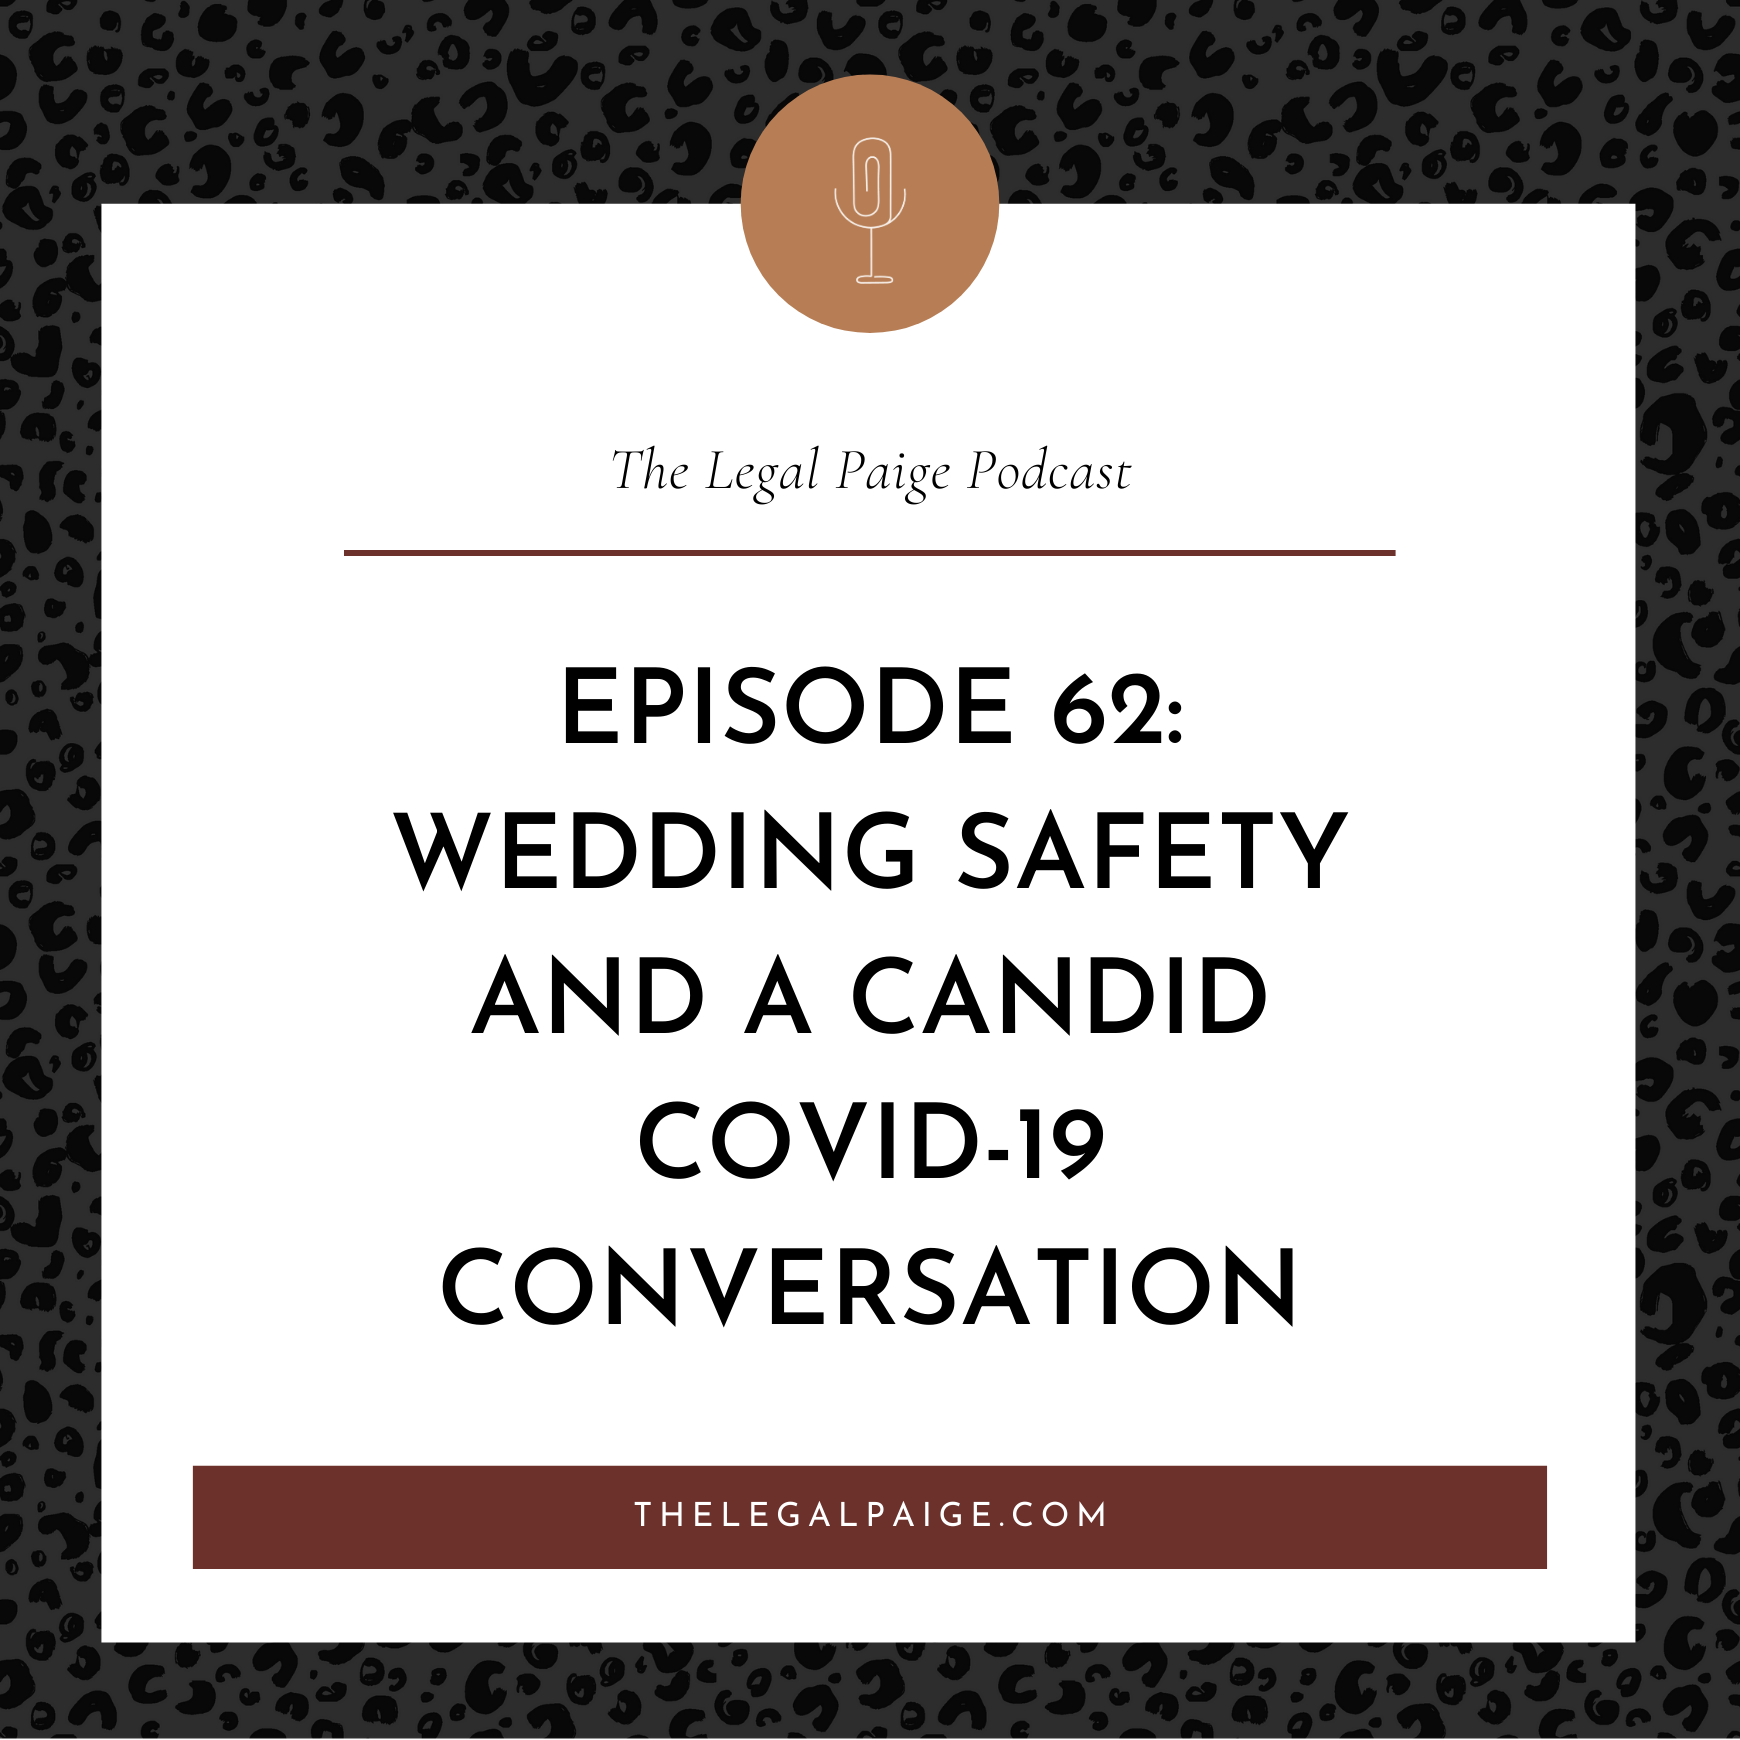 Ep 62: Wedding Safety and A Candid COVID-19 Conversation